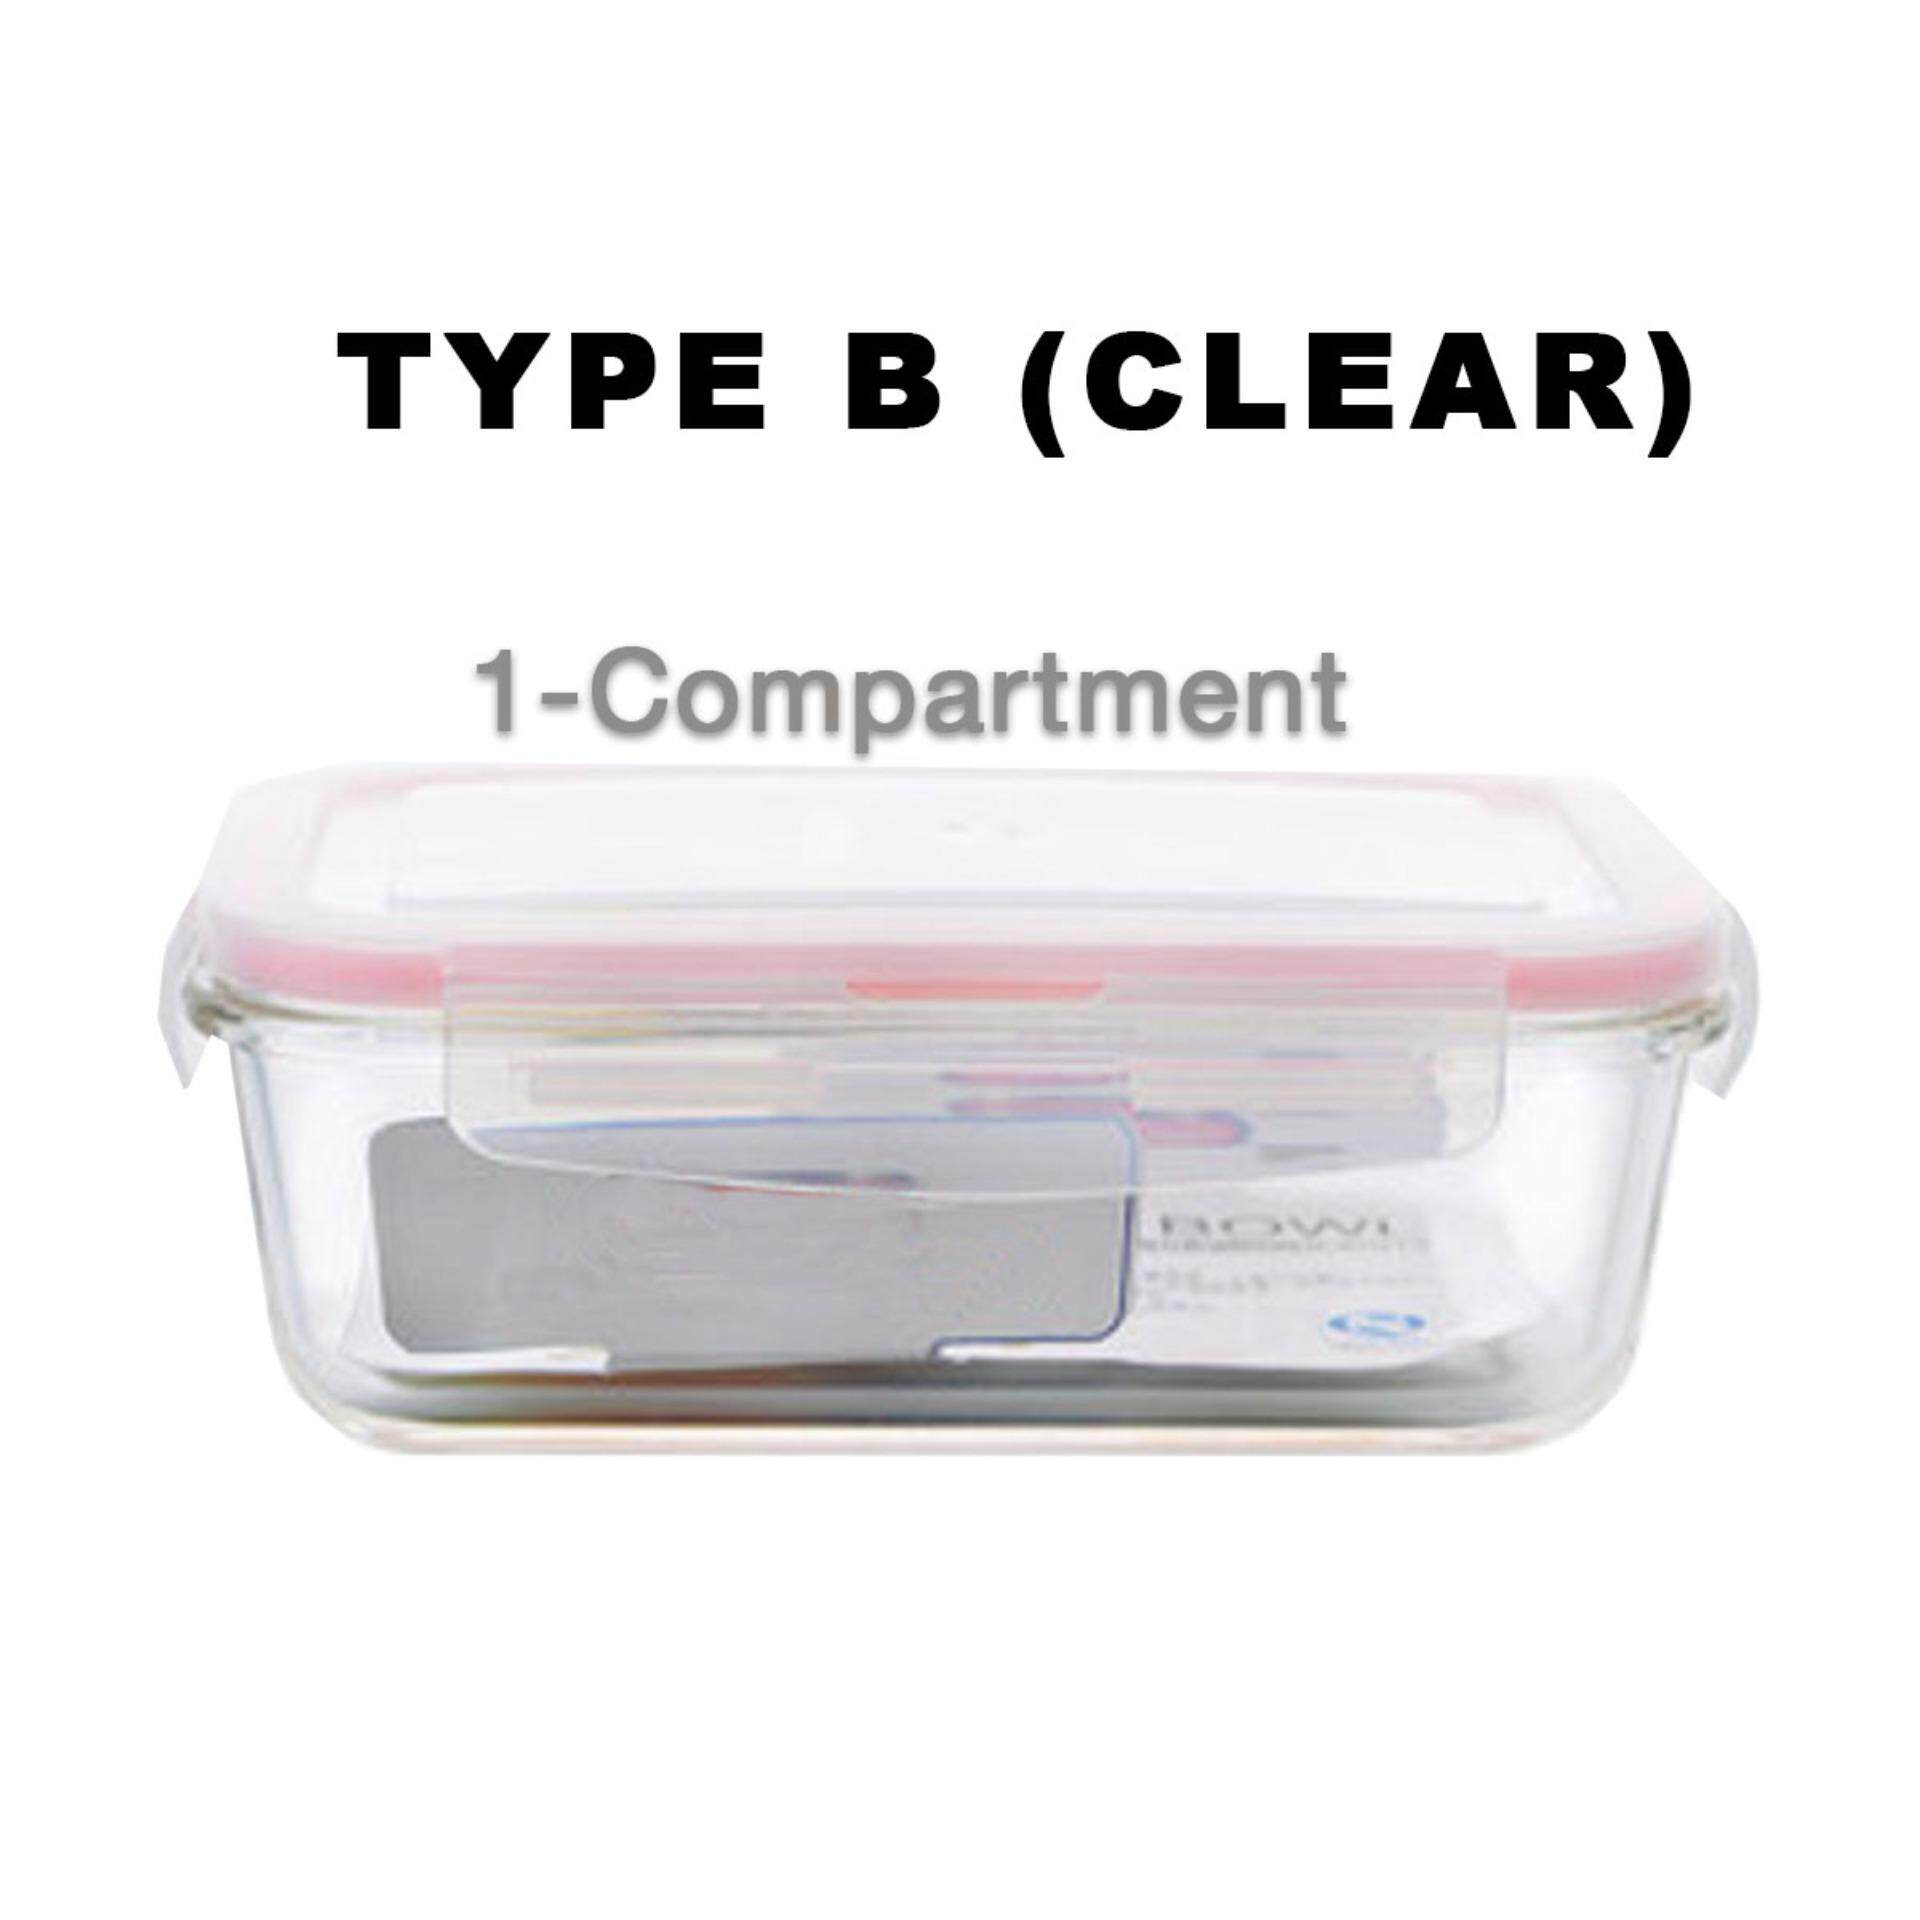 Microwave Oven Containers Bestmicrowave